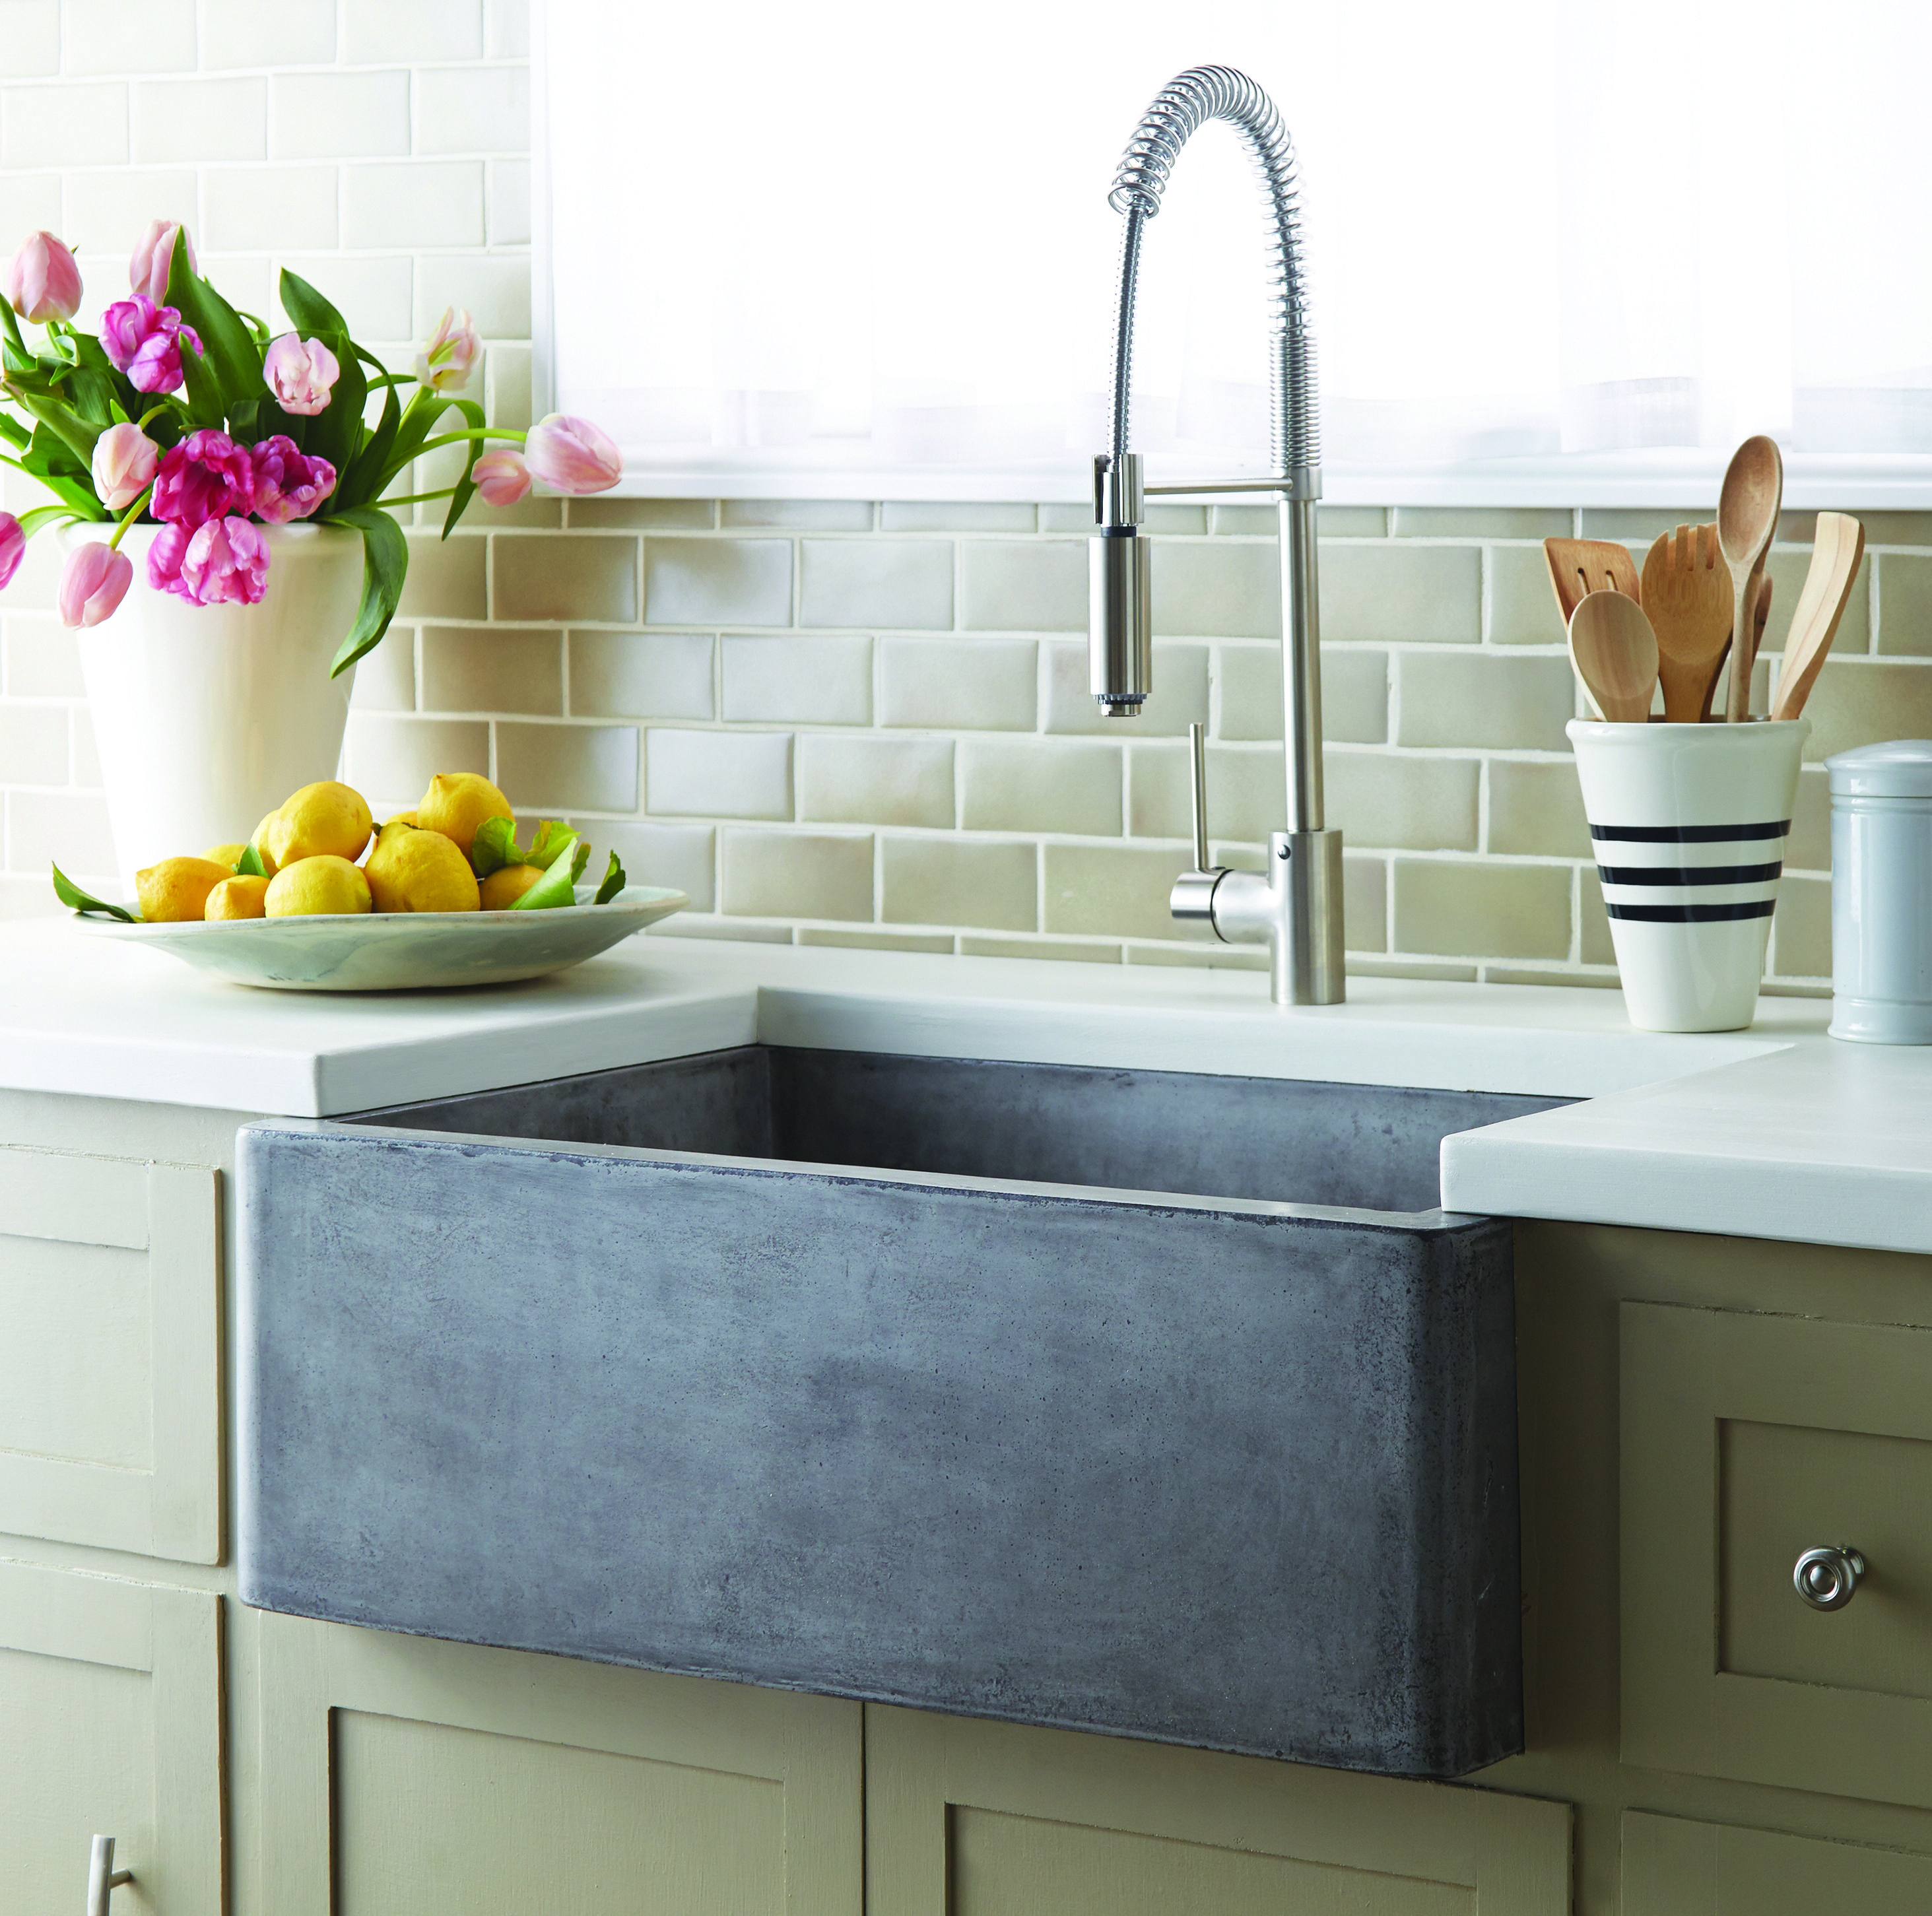 Farmhouse 30 Sets A Precedent For Popularity This 30 Inch Single Basin Farmhouse Sink Offers A Desirab Stone Sink Kitchen Farmhouse Sink Kitchen Stone Kitchen